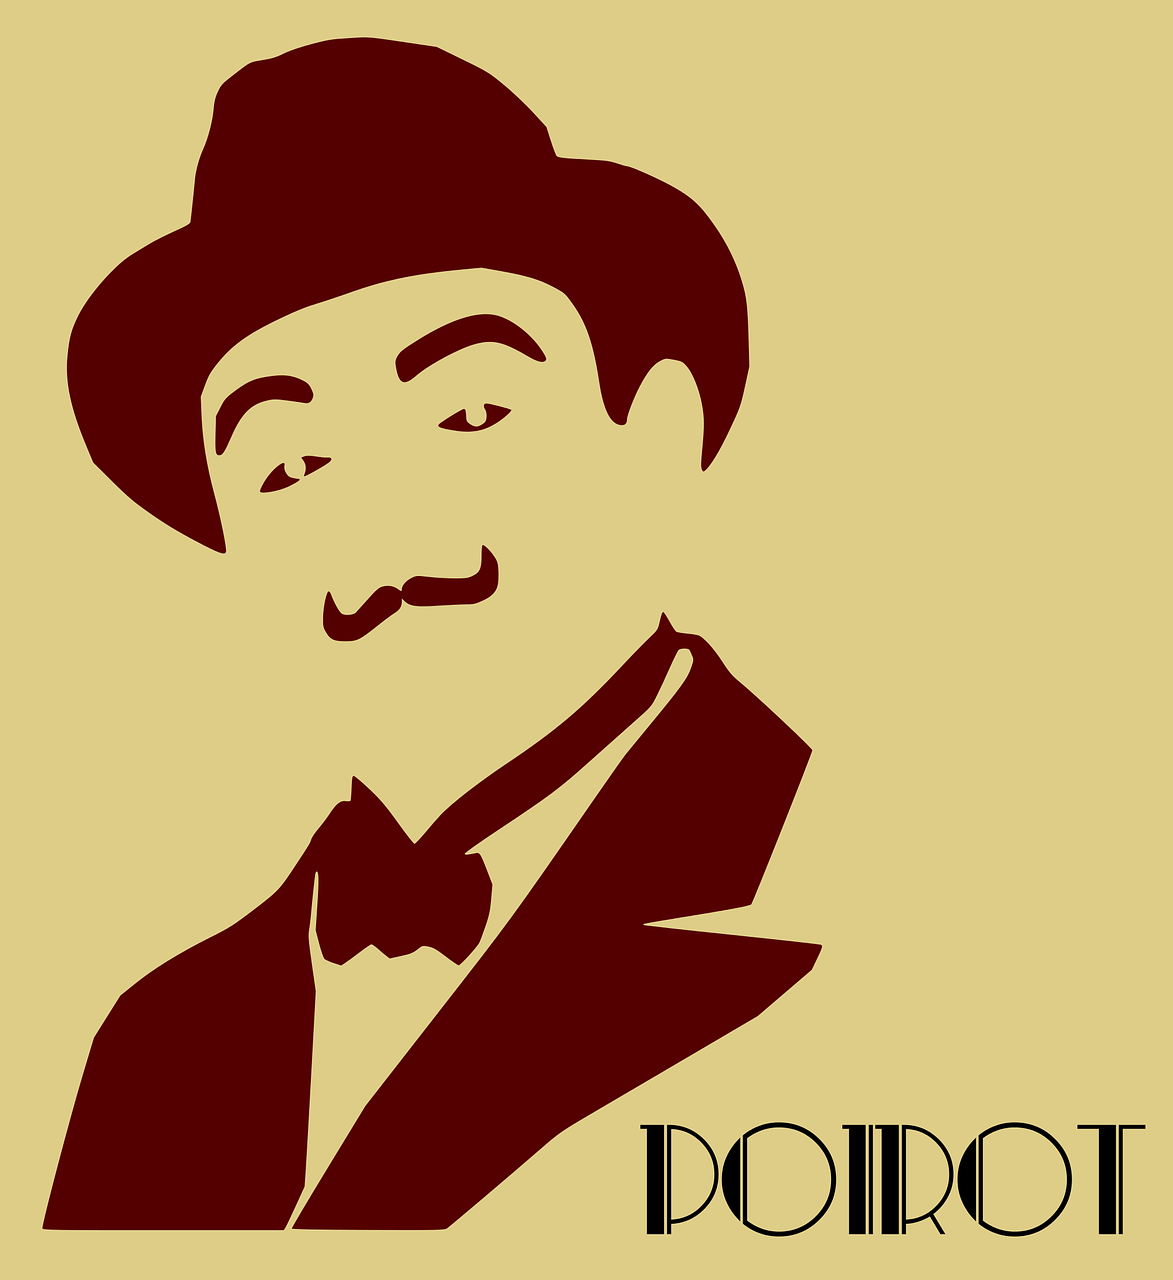 Hercule Poirot Figures People - Free image on Pixabay